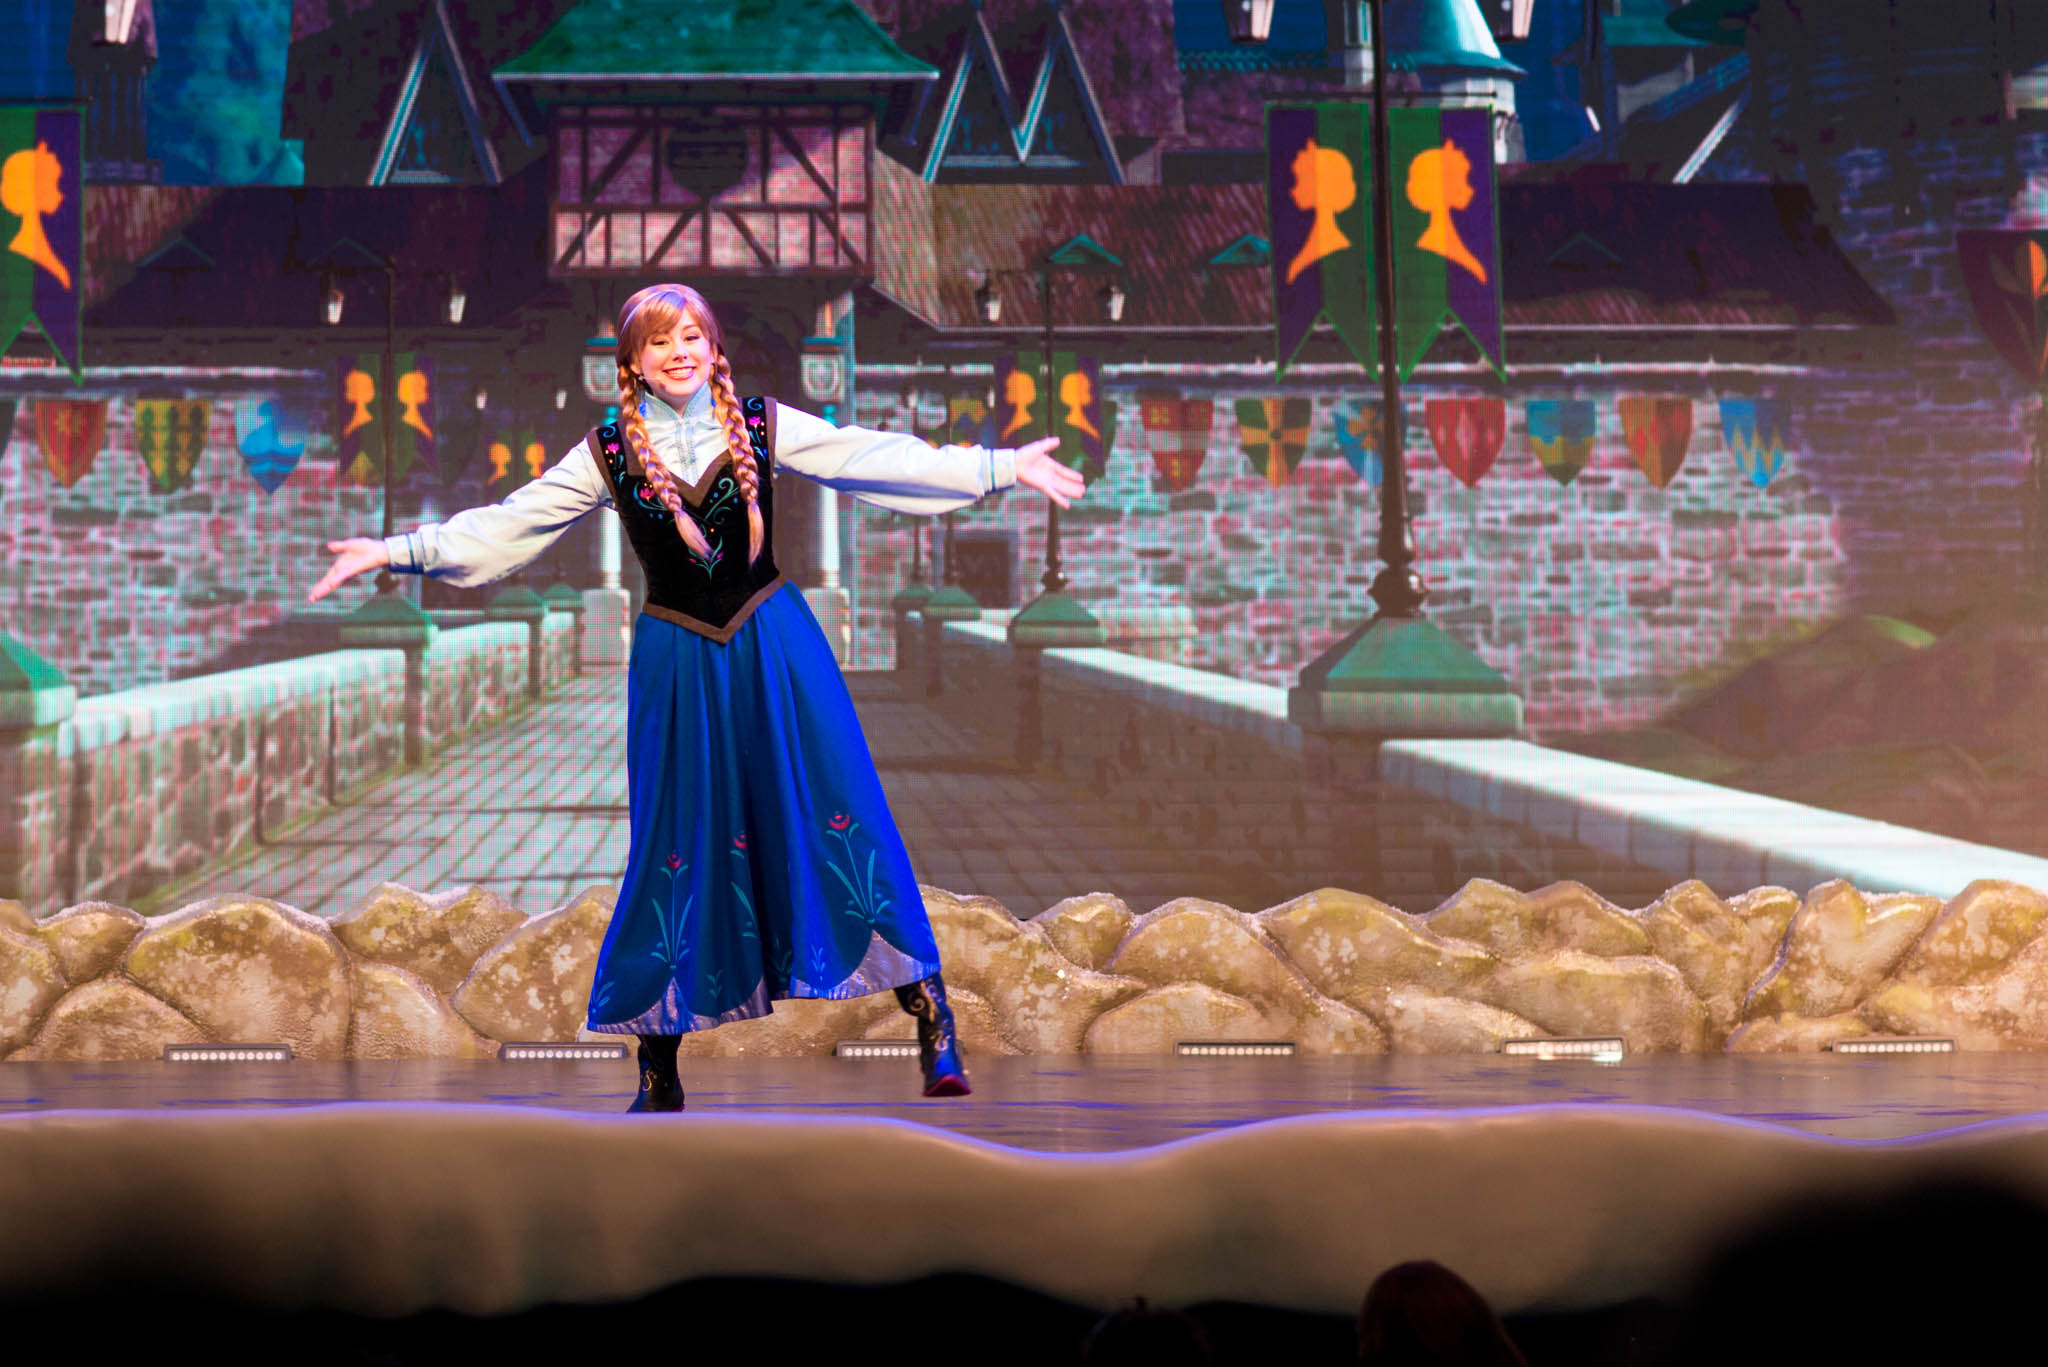 Disney's Hollywood Studios - Frozen Sing-Along